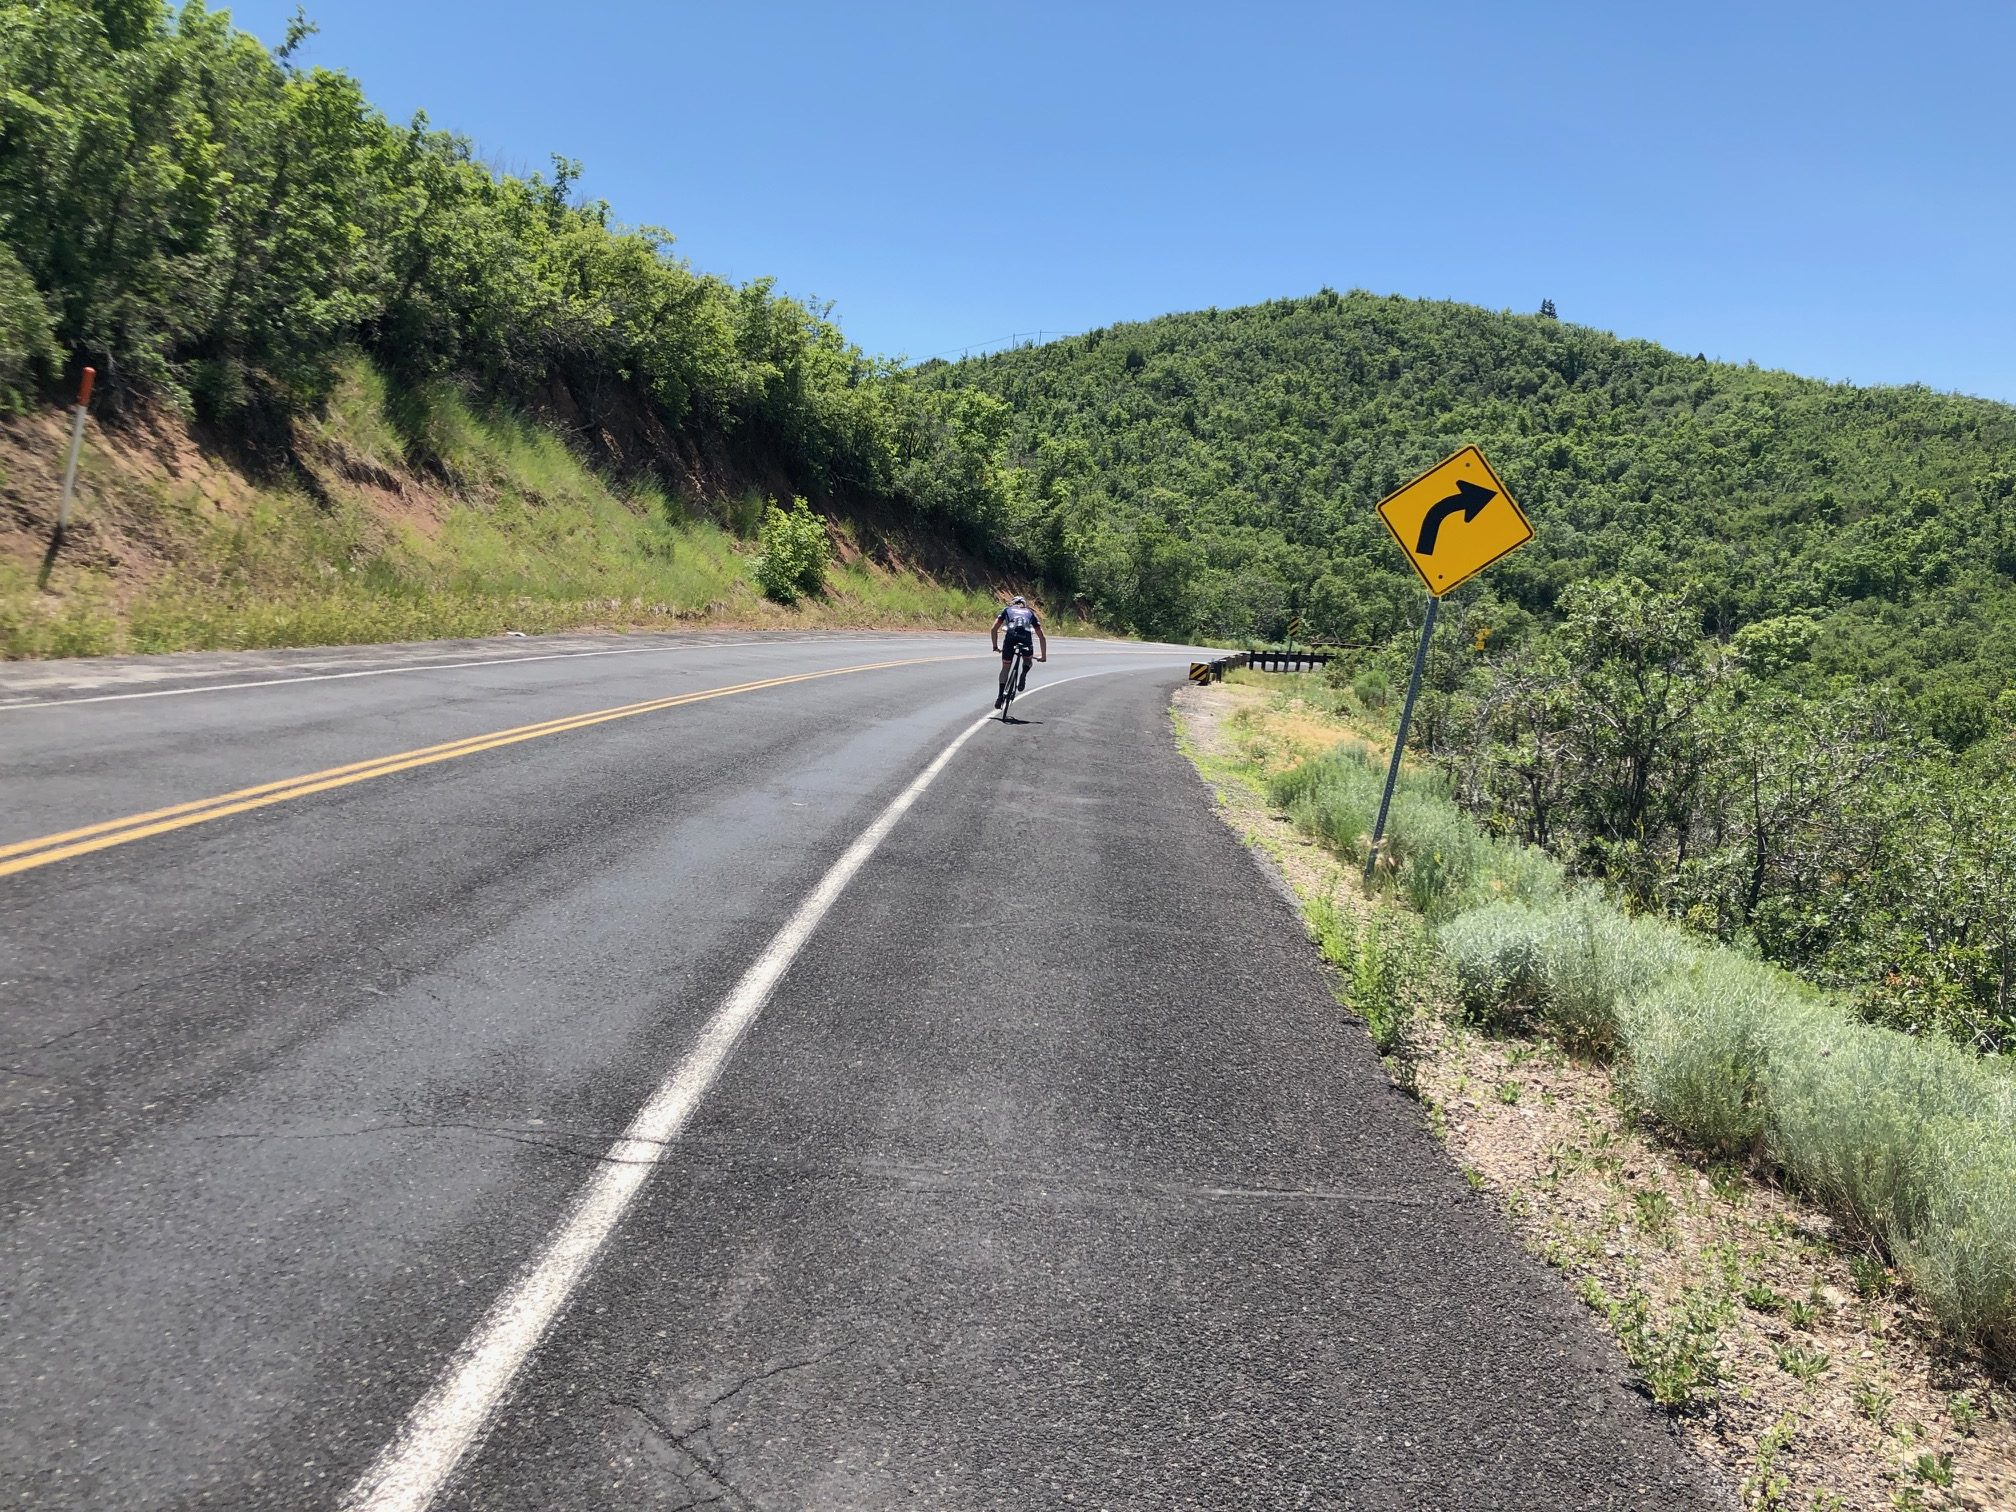 A cyclist descends Emigration Canyon with no cars around. Photo by Dave Iltis